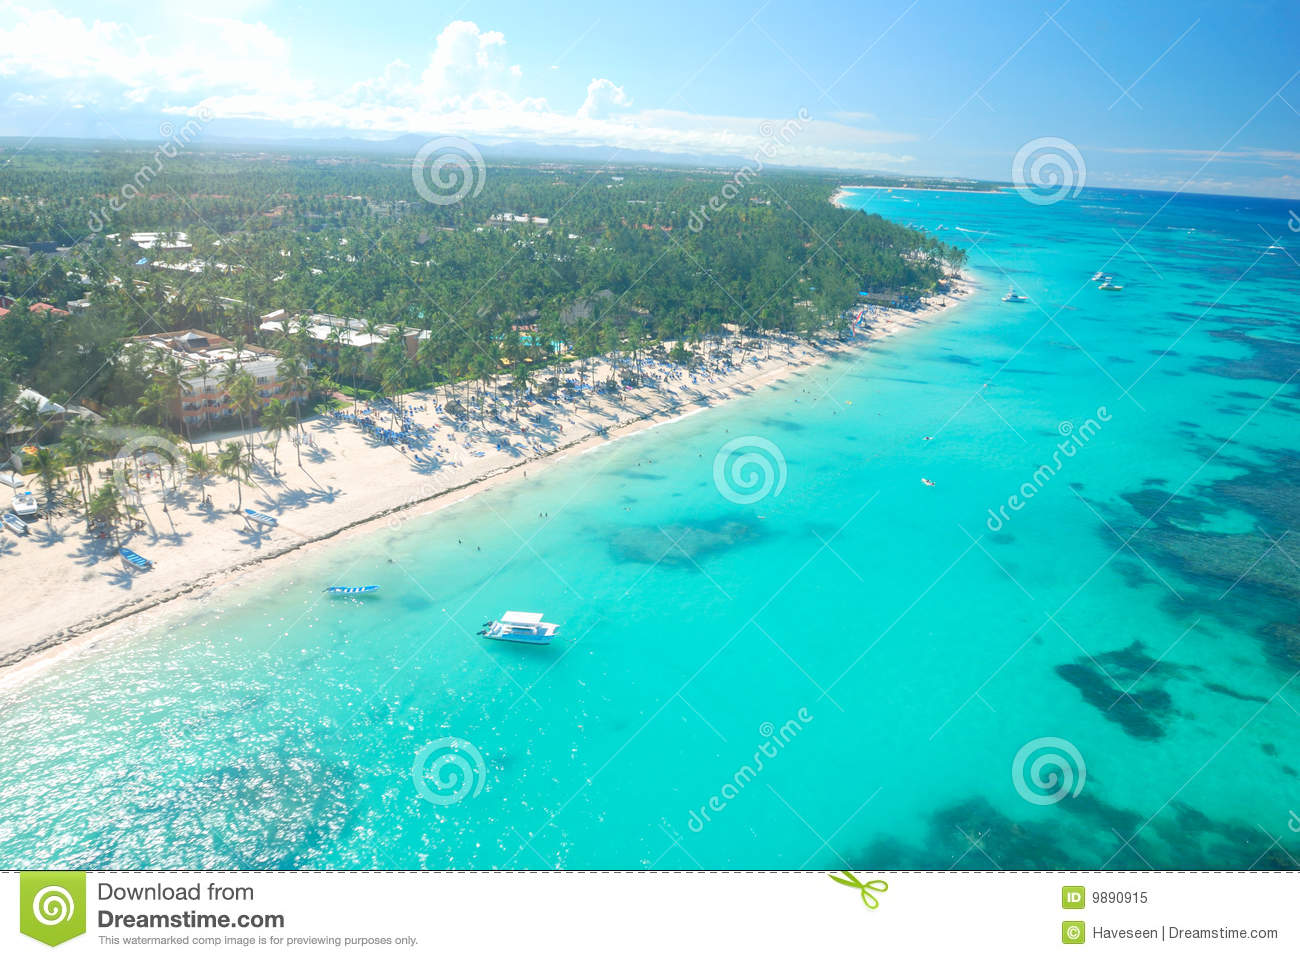 Caribbean Beach Aerial View Royalty Free Stock Photo - Image: 9890915: dreamstime.com/royalty-free-stock-photo-caribbean-beach-aerial-view...